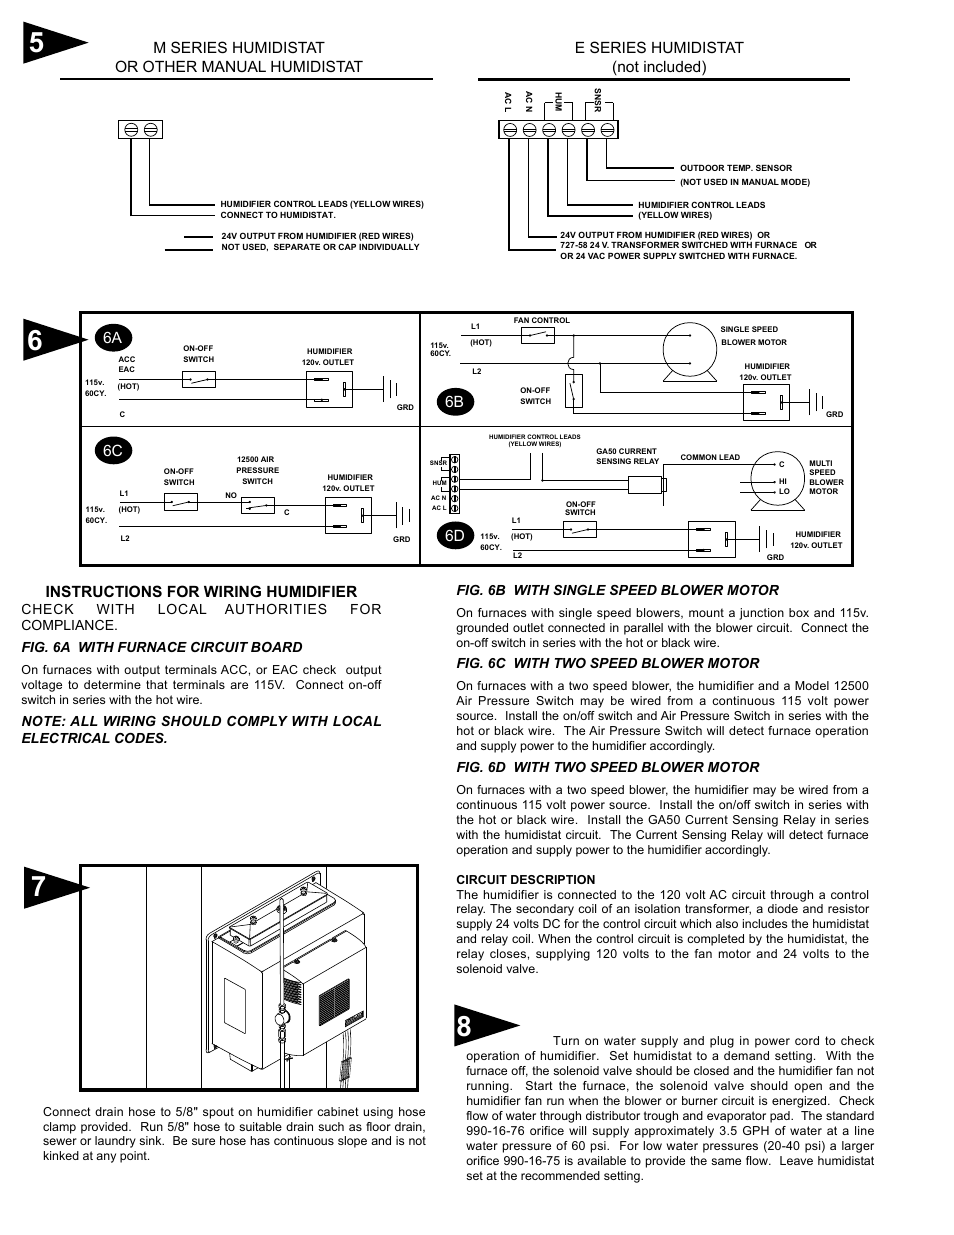 general 1137 wiring diagram general humidifier wiring diagram 81